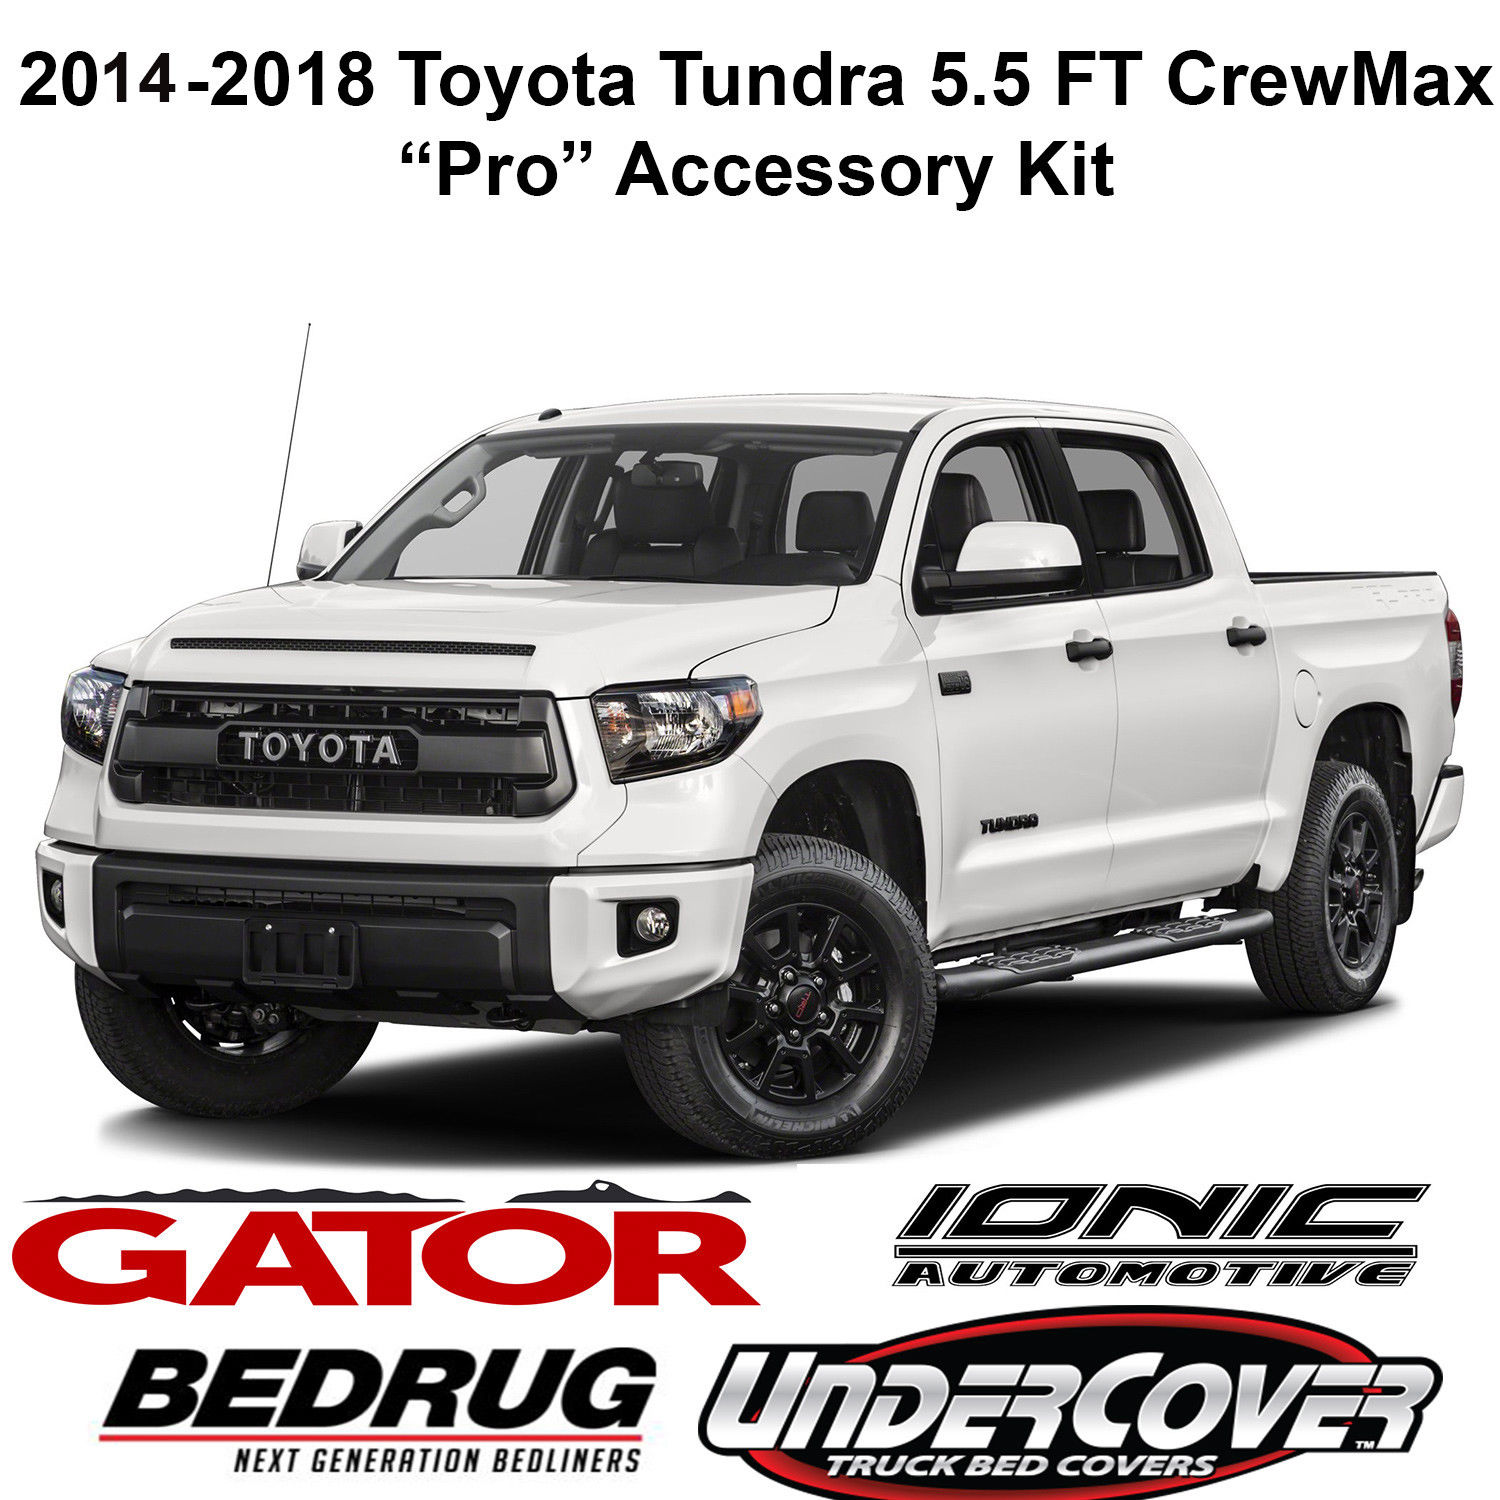 Gator Pro Accessory Kit Fits 2014 2018 Toyota Tundra Crewmax 5 5 Ft Bed No Track Sys Gator Sr1 Roll Up Tonneau Cover Ionic 5 Nerf Bars Bedrug Impact Bed Mat Undercover Swing Case